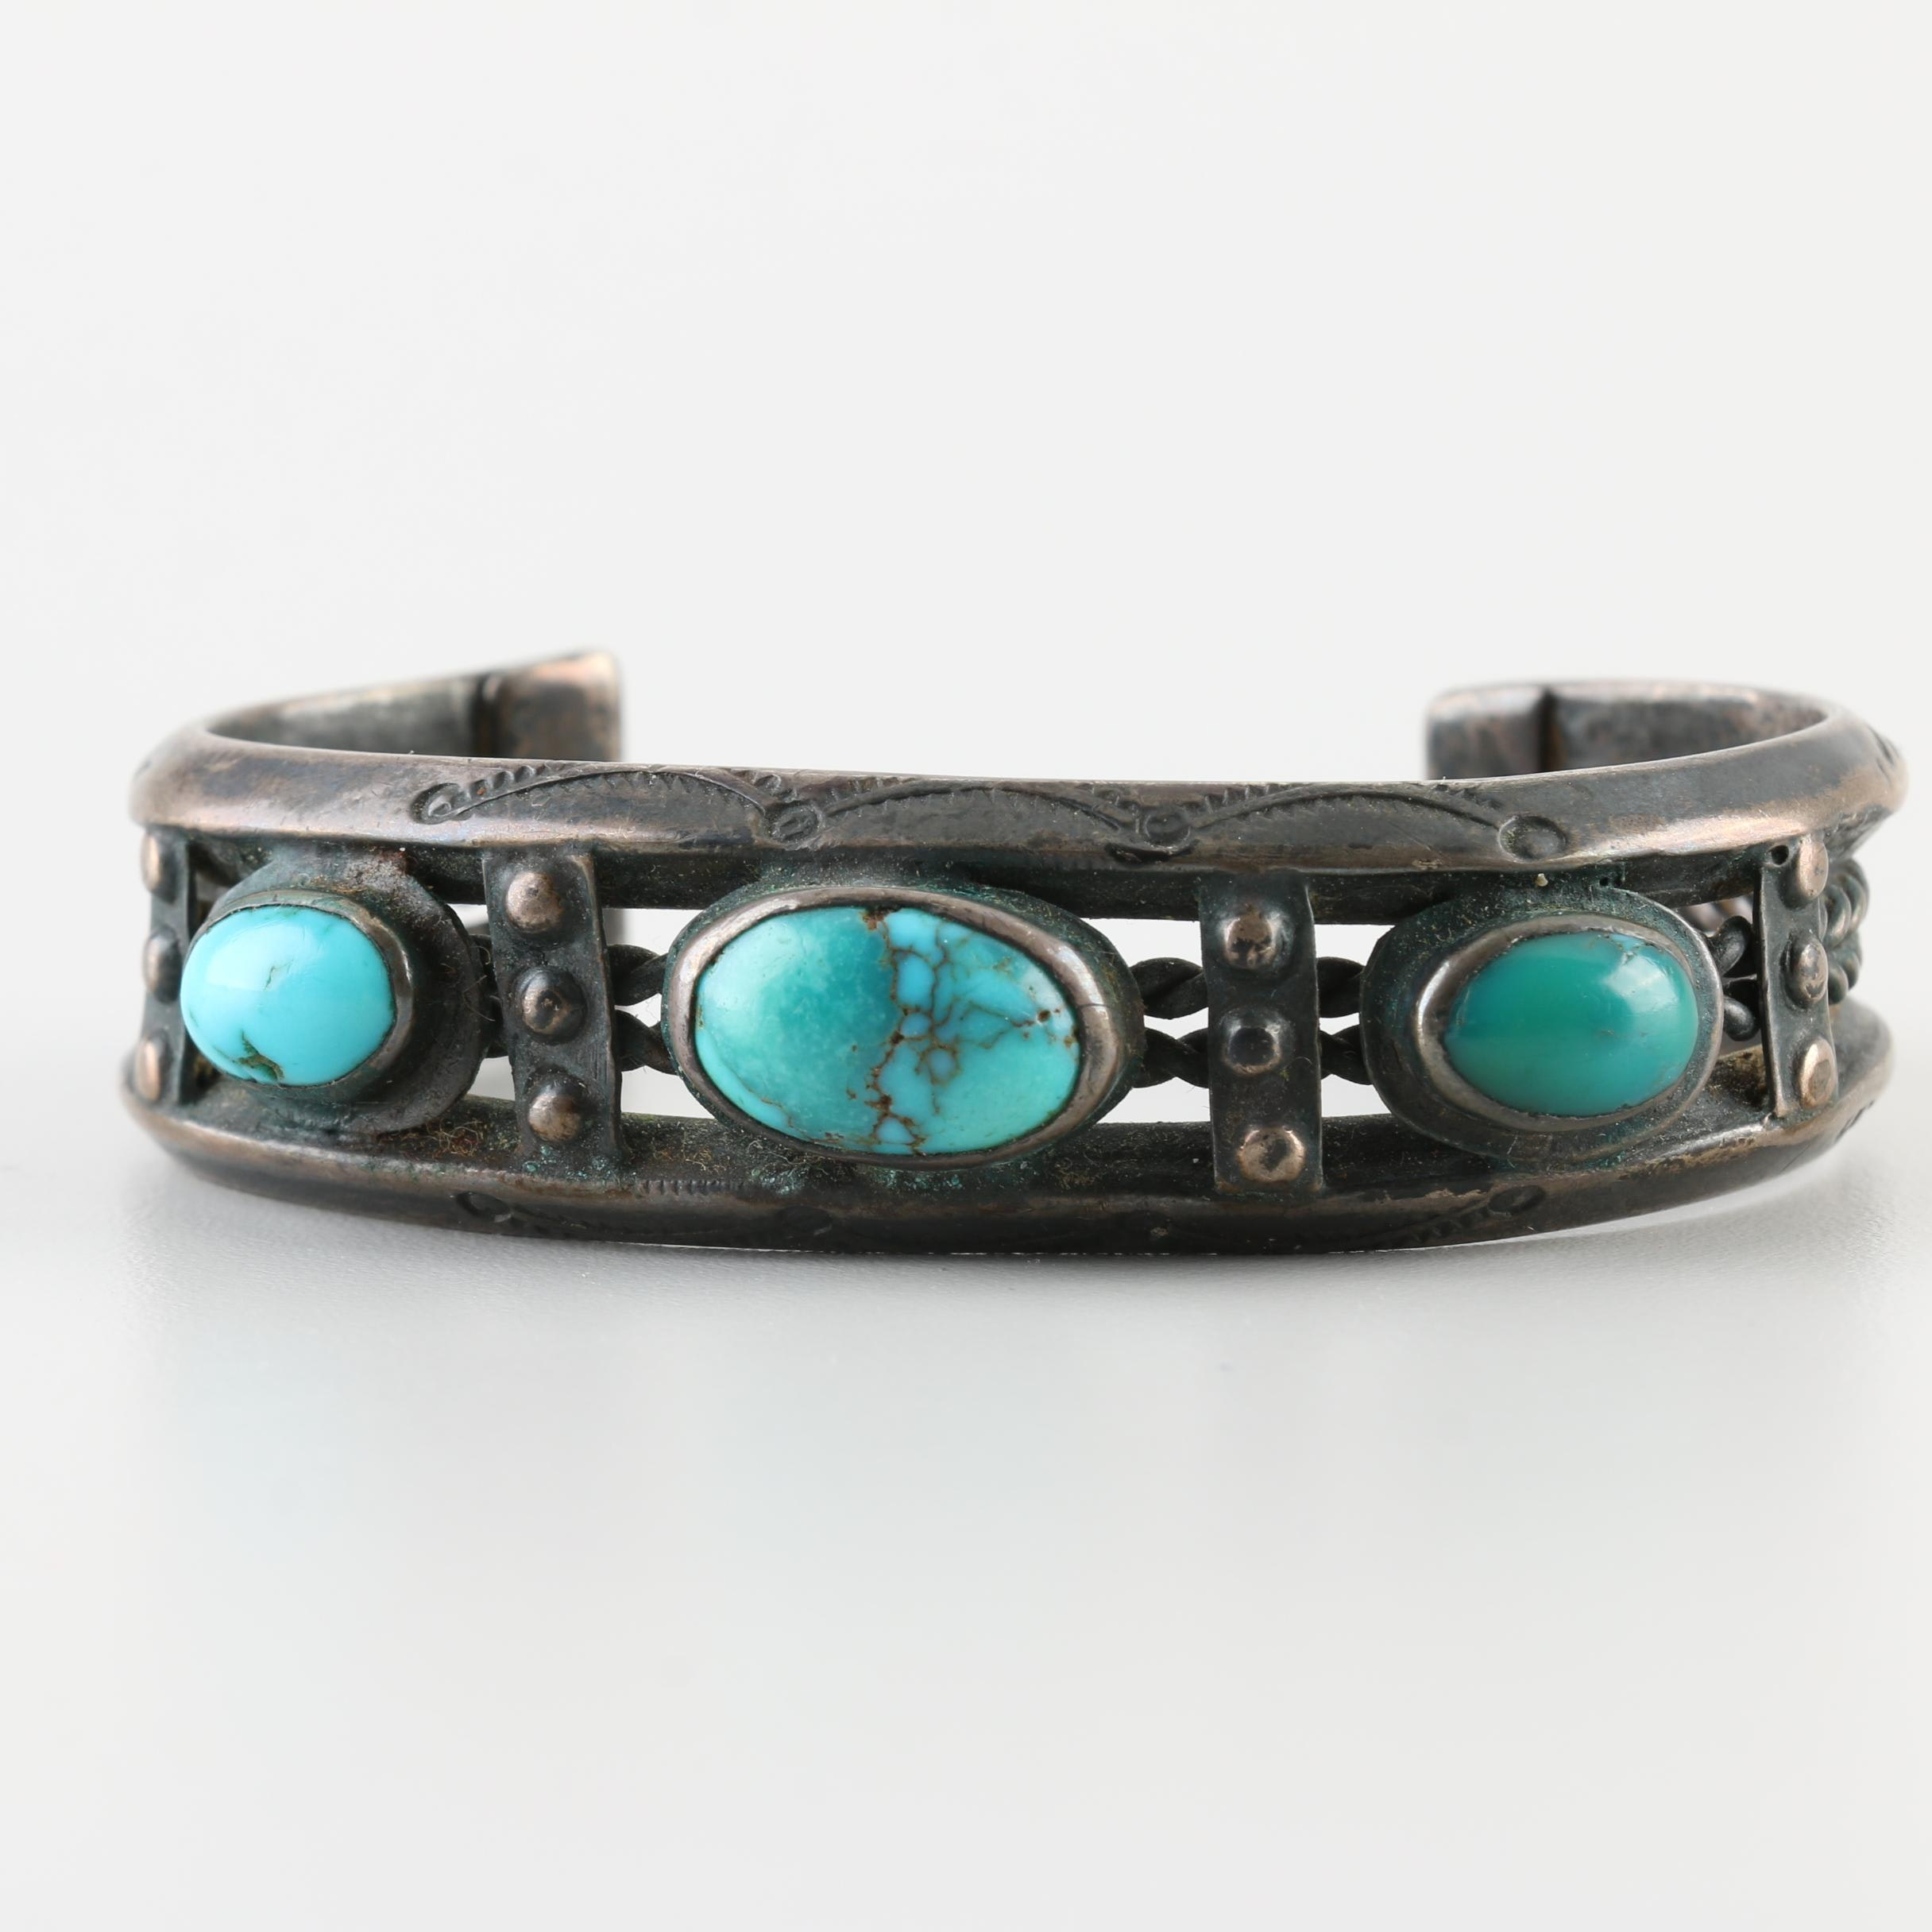 Old Pawn Southwestern Style Sterling Silver Turquoise Handmade Cuff Bracelet